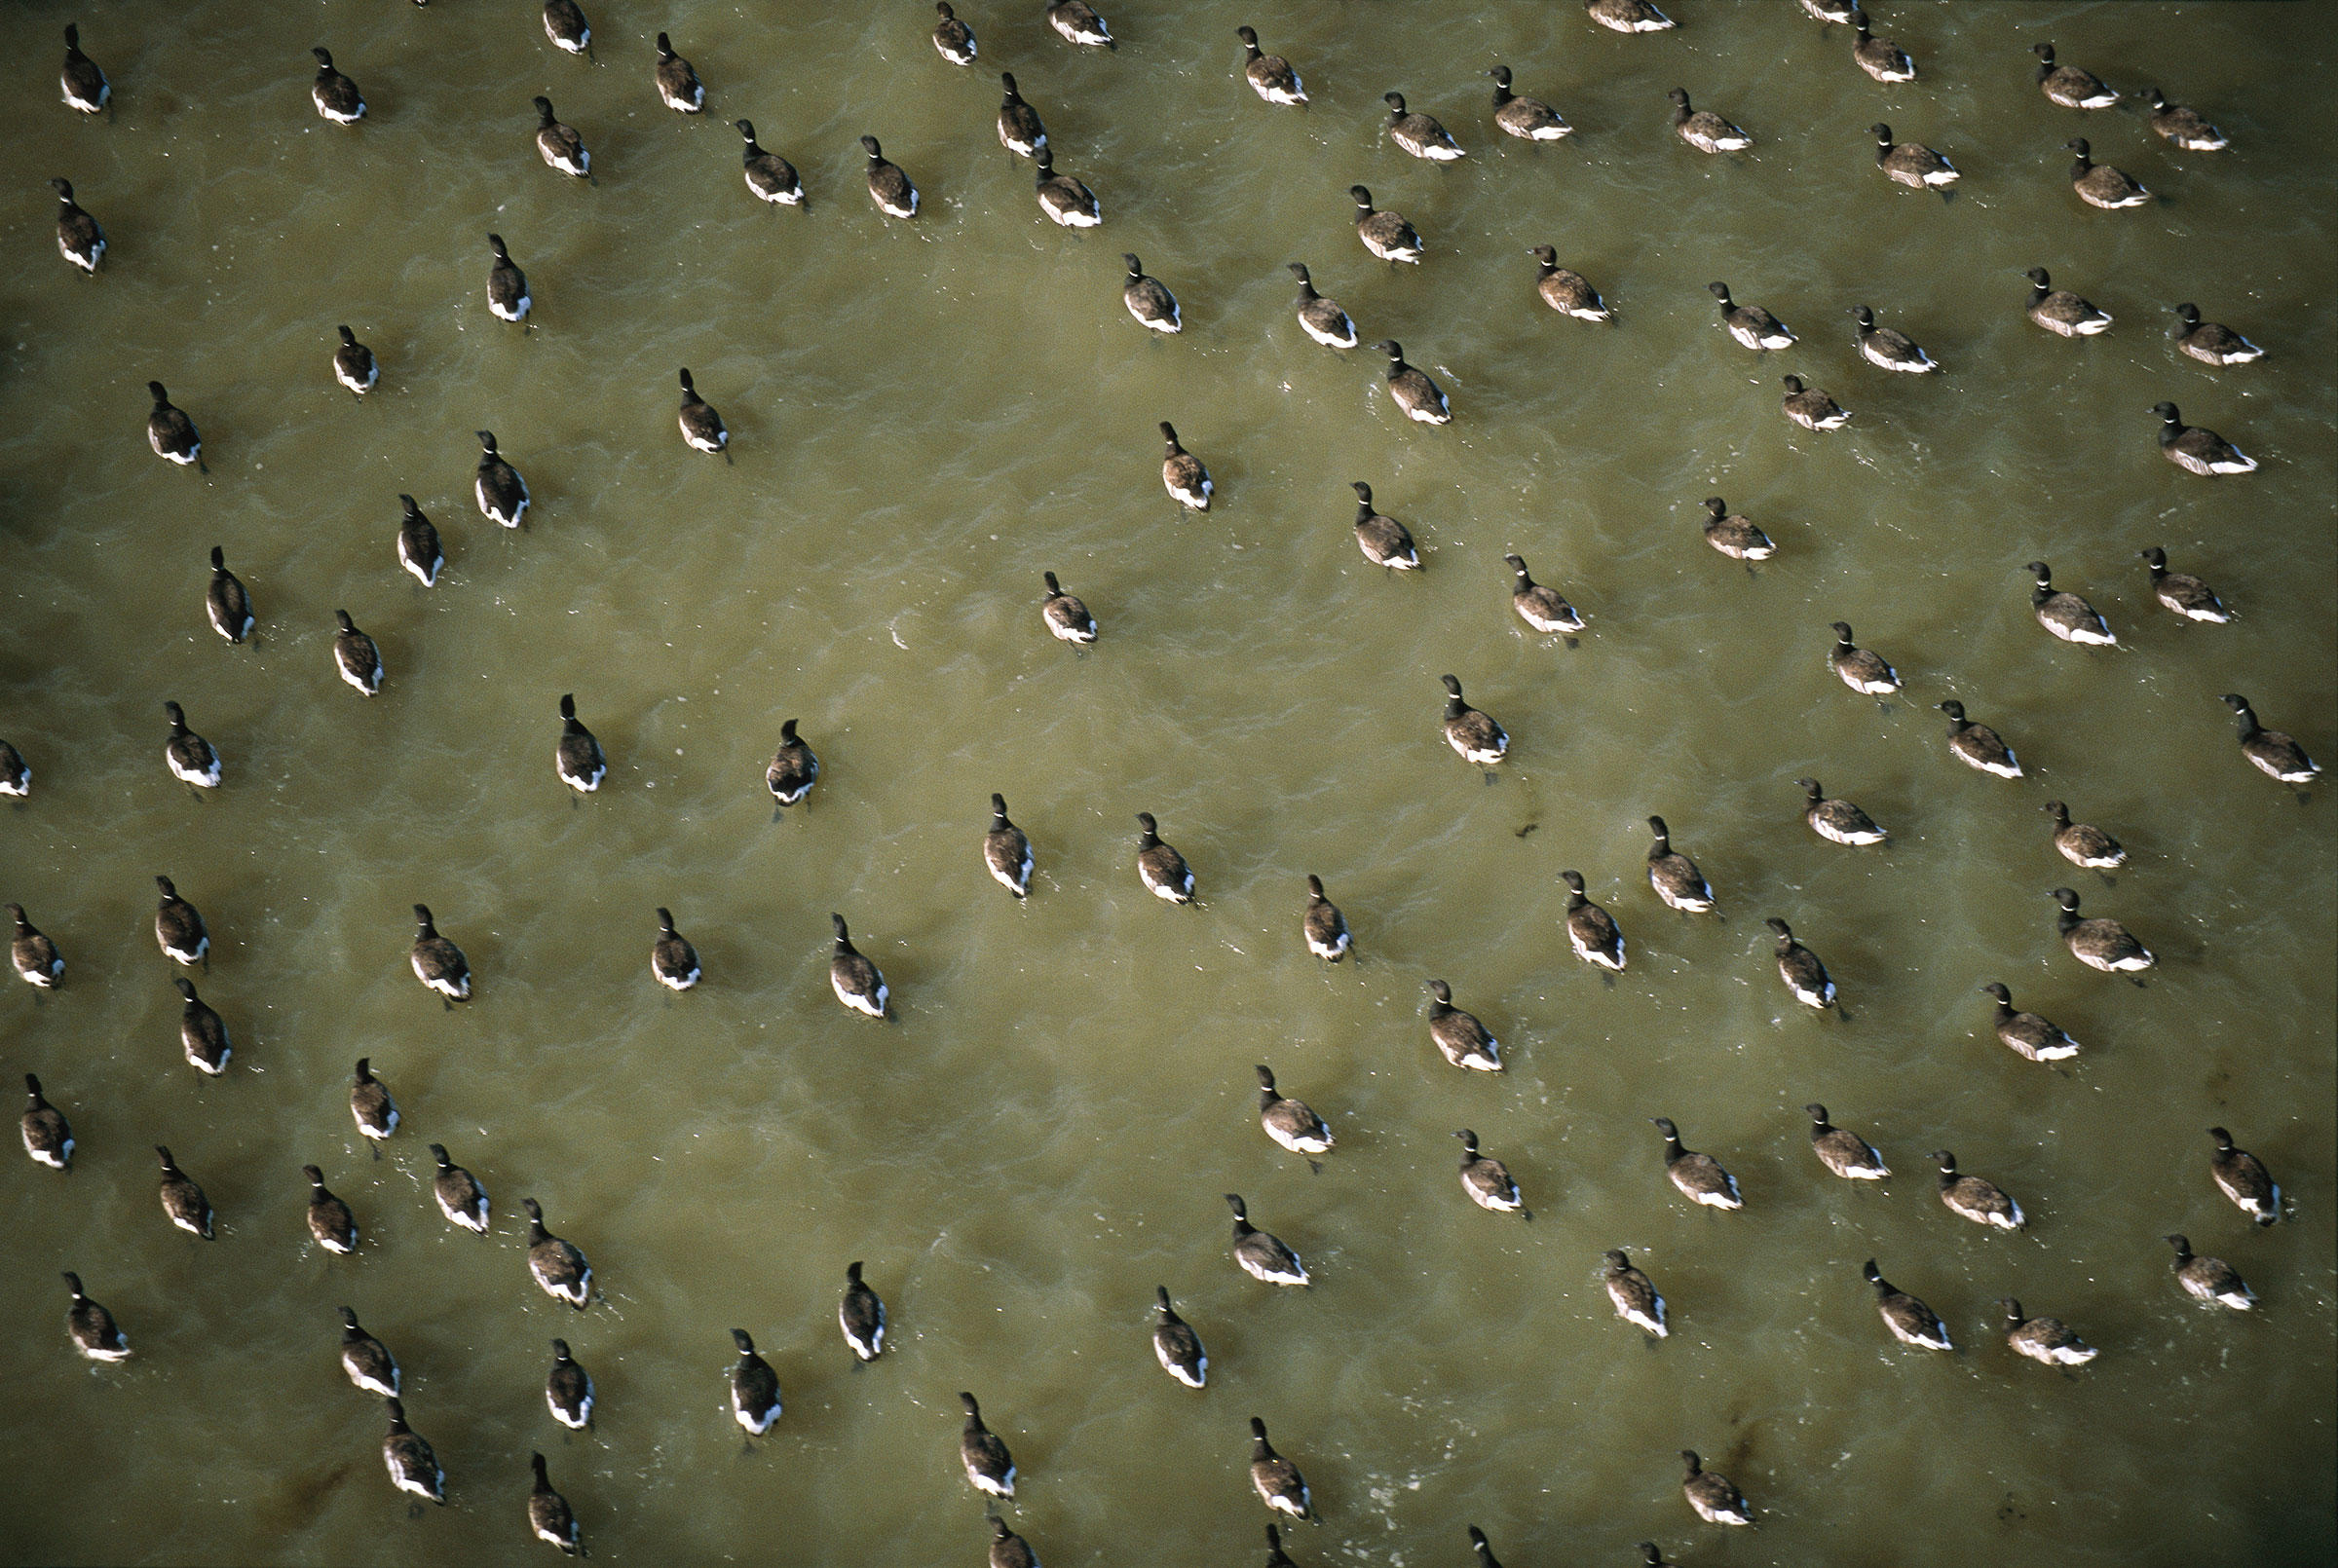 Pacific Black Brant in the Teshekpuk Lake Special Area of the National Petroleum Reserve-Alaska. Joel Sartore/National Geographic Image Collection